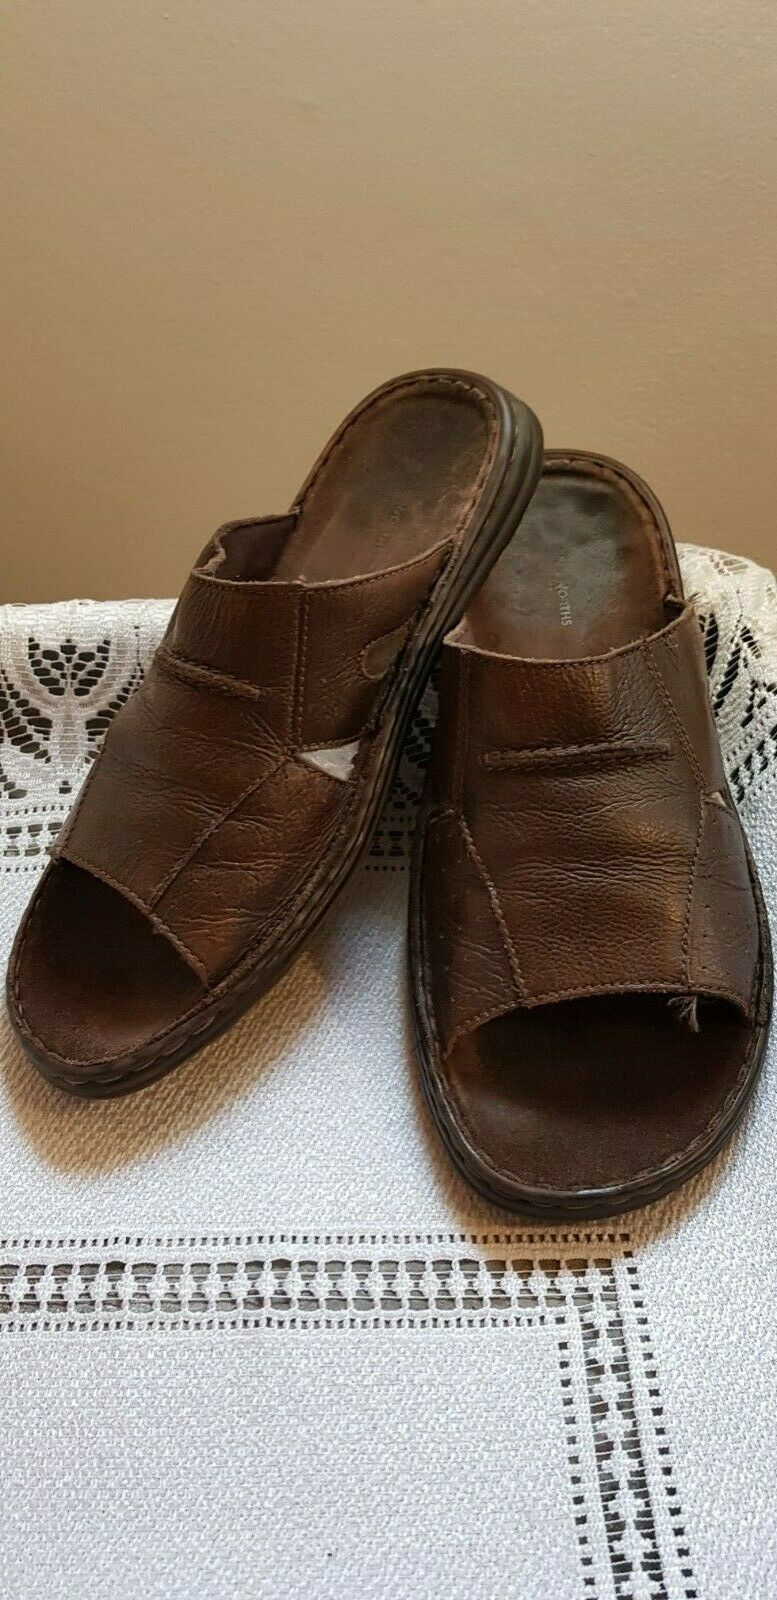 WOOLWORTHS Brown Soft Leather Men's Slippers -size UK 12  EU 46-